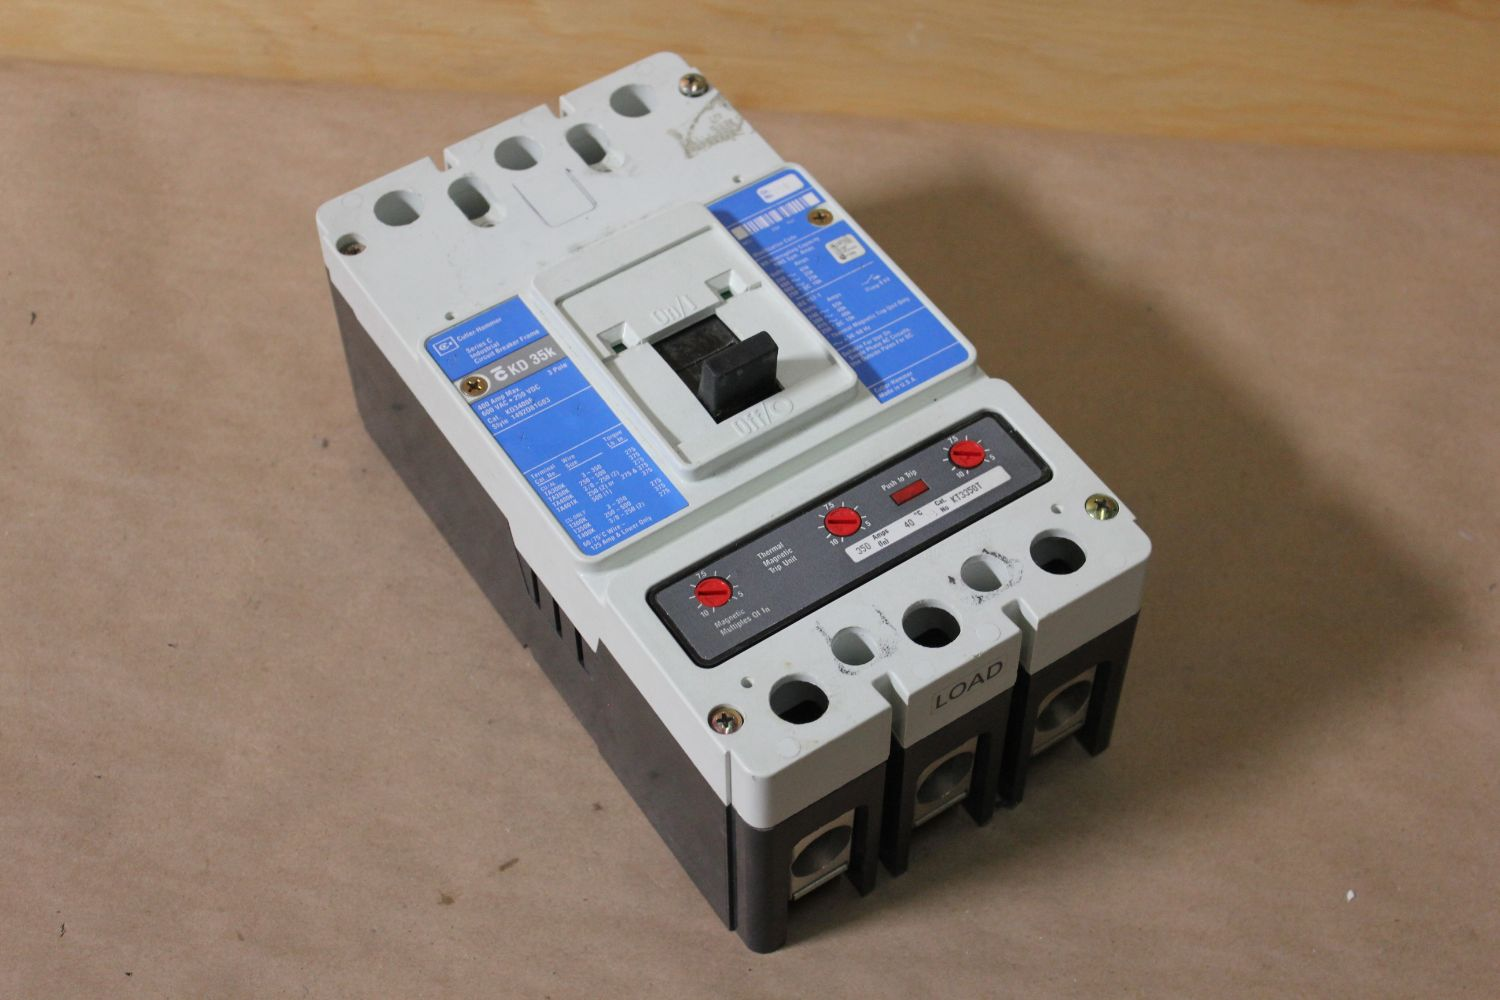 Monthly New & Used Industrial MRO - Automation Parts, PLC's, Motors, Sensors, Breakers, Controls, Bearings -**Shipping Available**